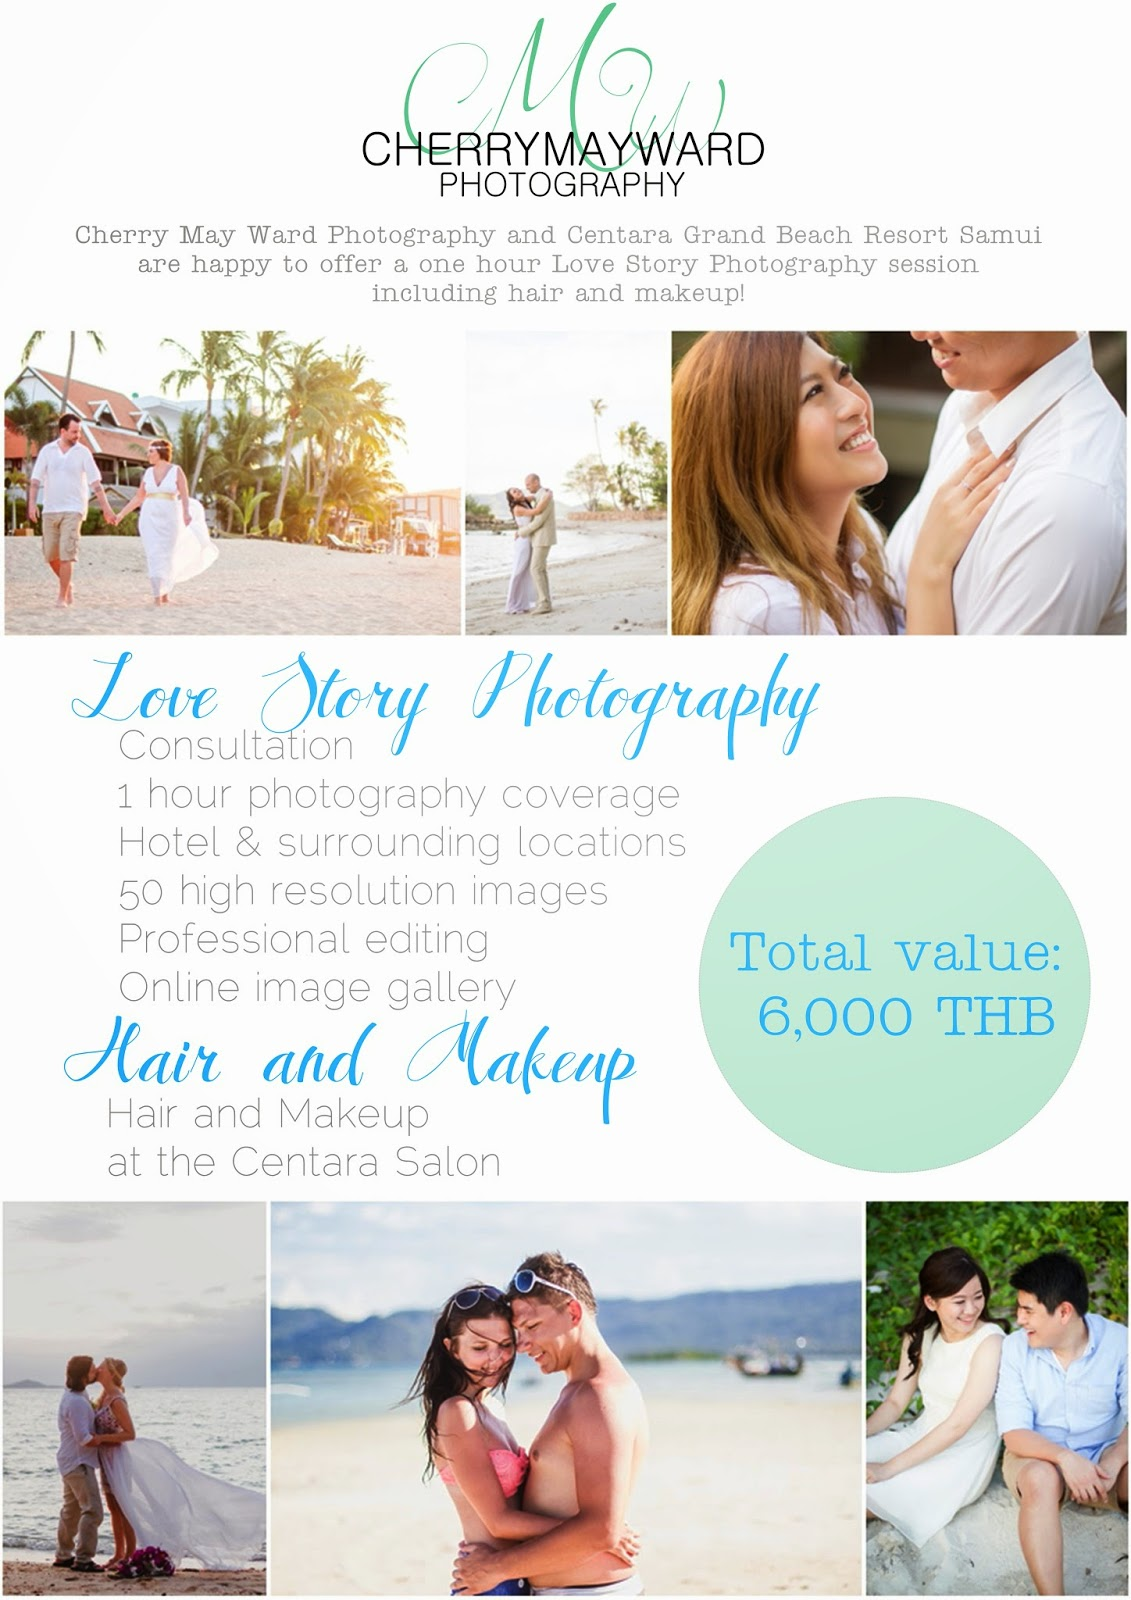 Charity Auction item, up for auction, Love Story Photography, Koh Samui Charity Auction event, Charity event on Koh Samui, Cherry May Ward Photography and Centara Grand Beach Resort Samui, all proceeds go to Special Needs School of Samui